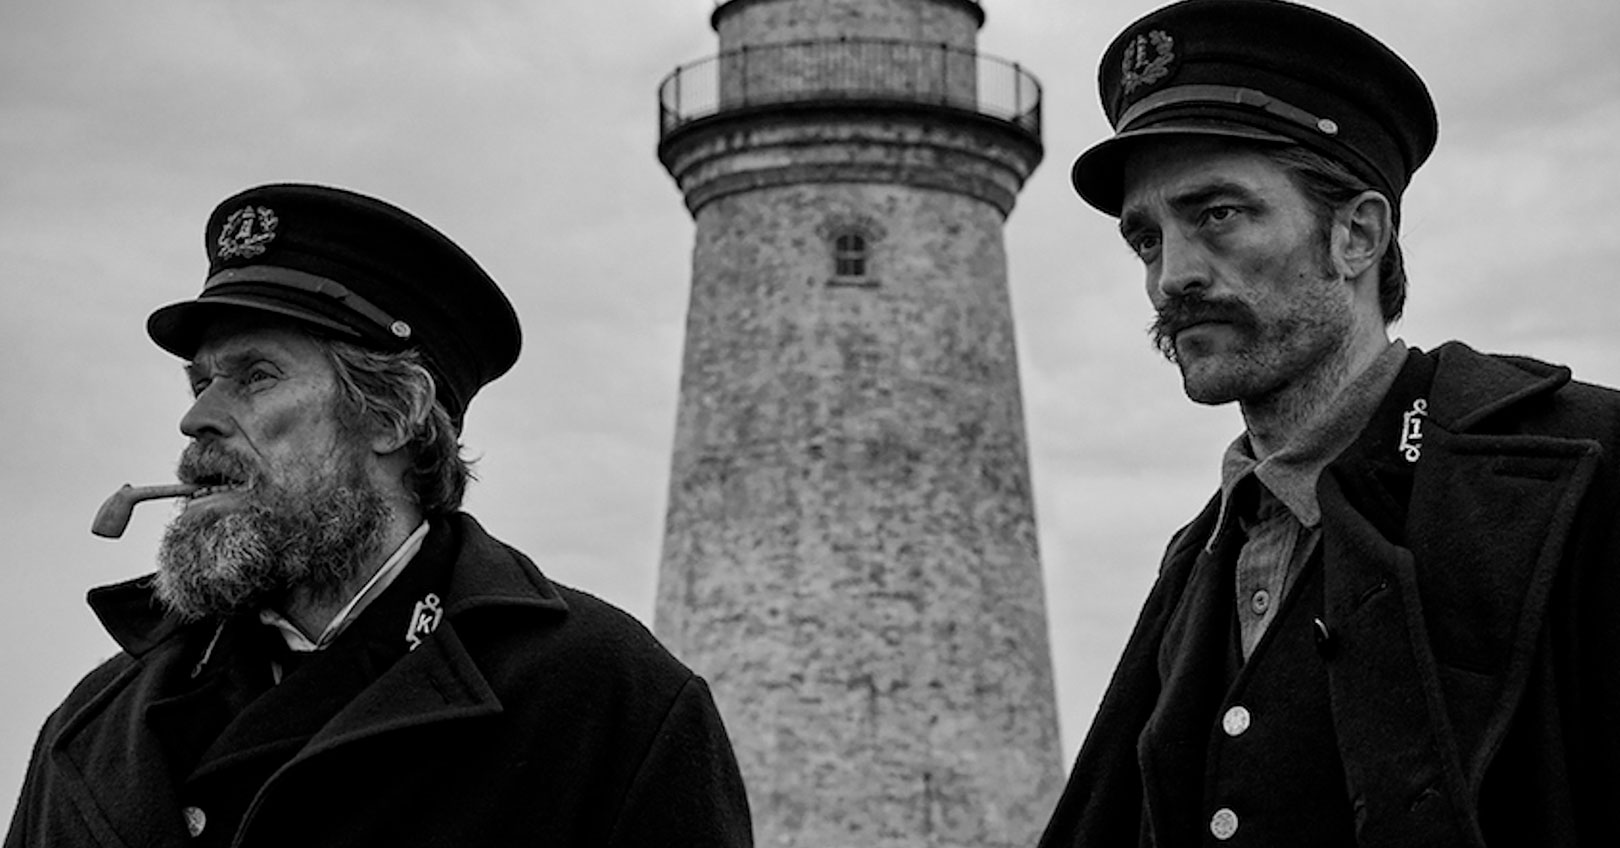 The Lighthouse - Willem Dafoe and Robert Pattinson